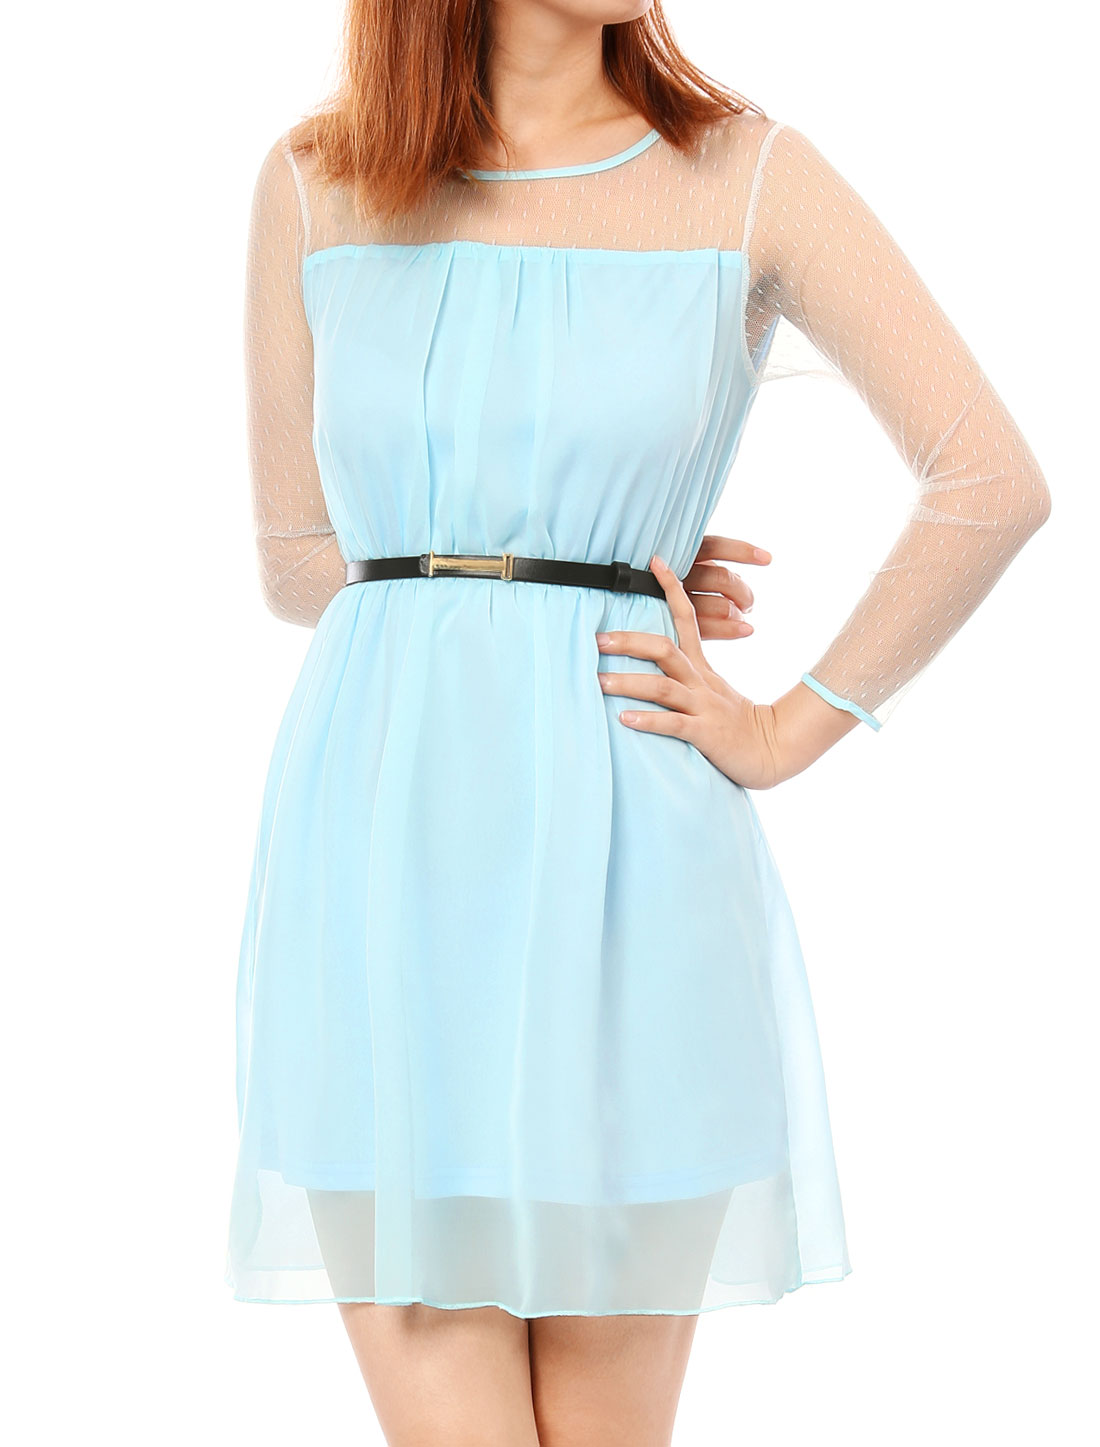 Lady Light Blue Splice Elastic Waist Design Above Knee Dress M